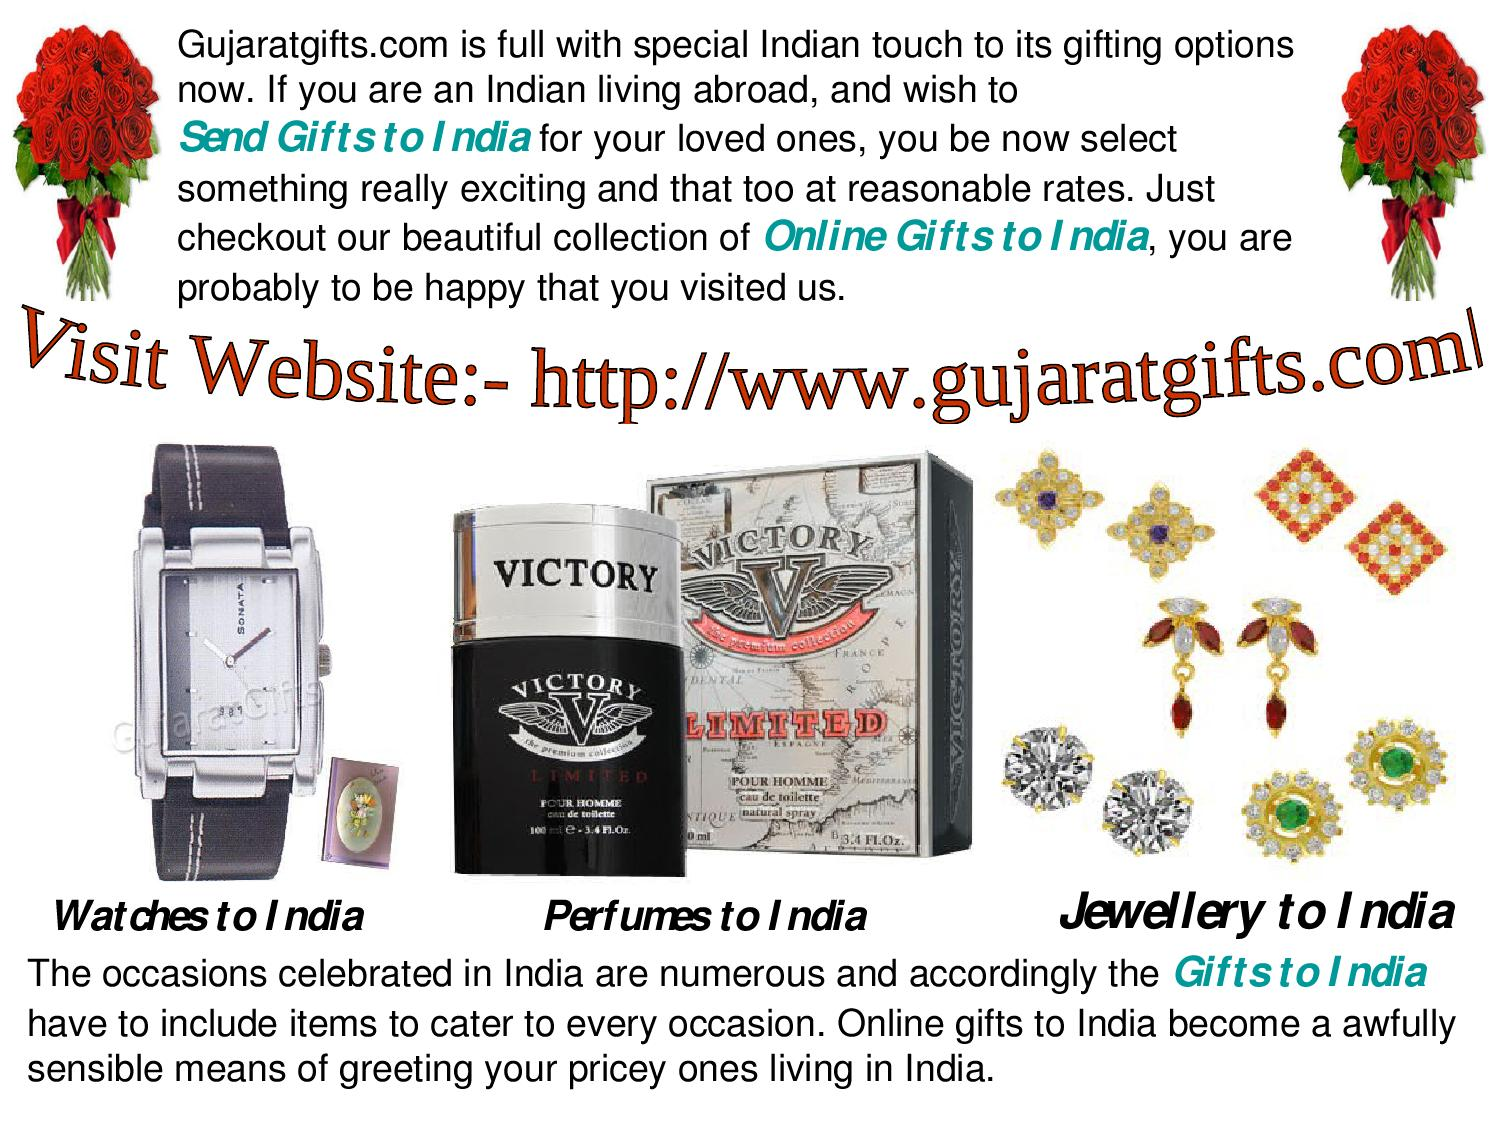 Special Occasions of Gifts to India by Gujaratgifts com by